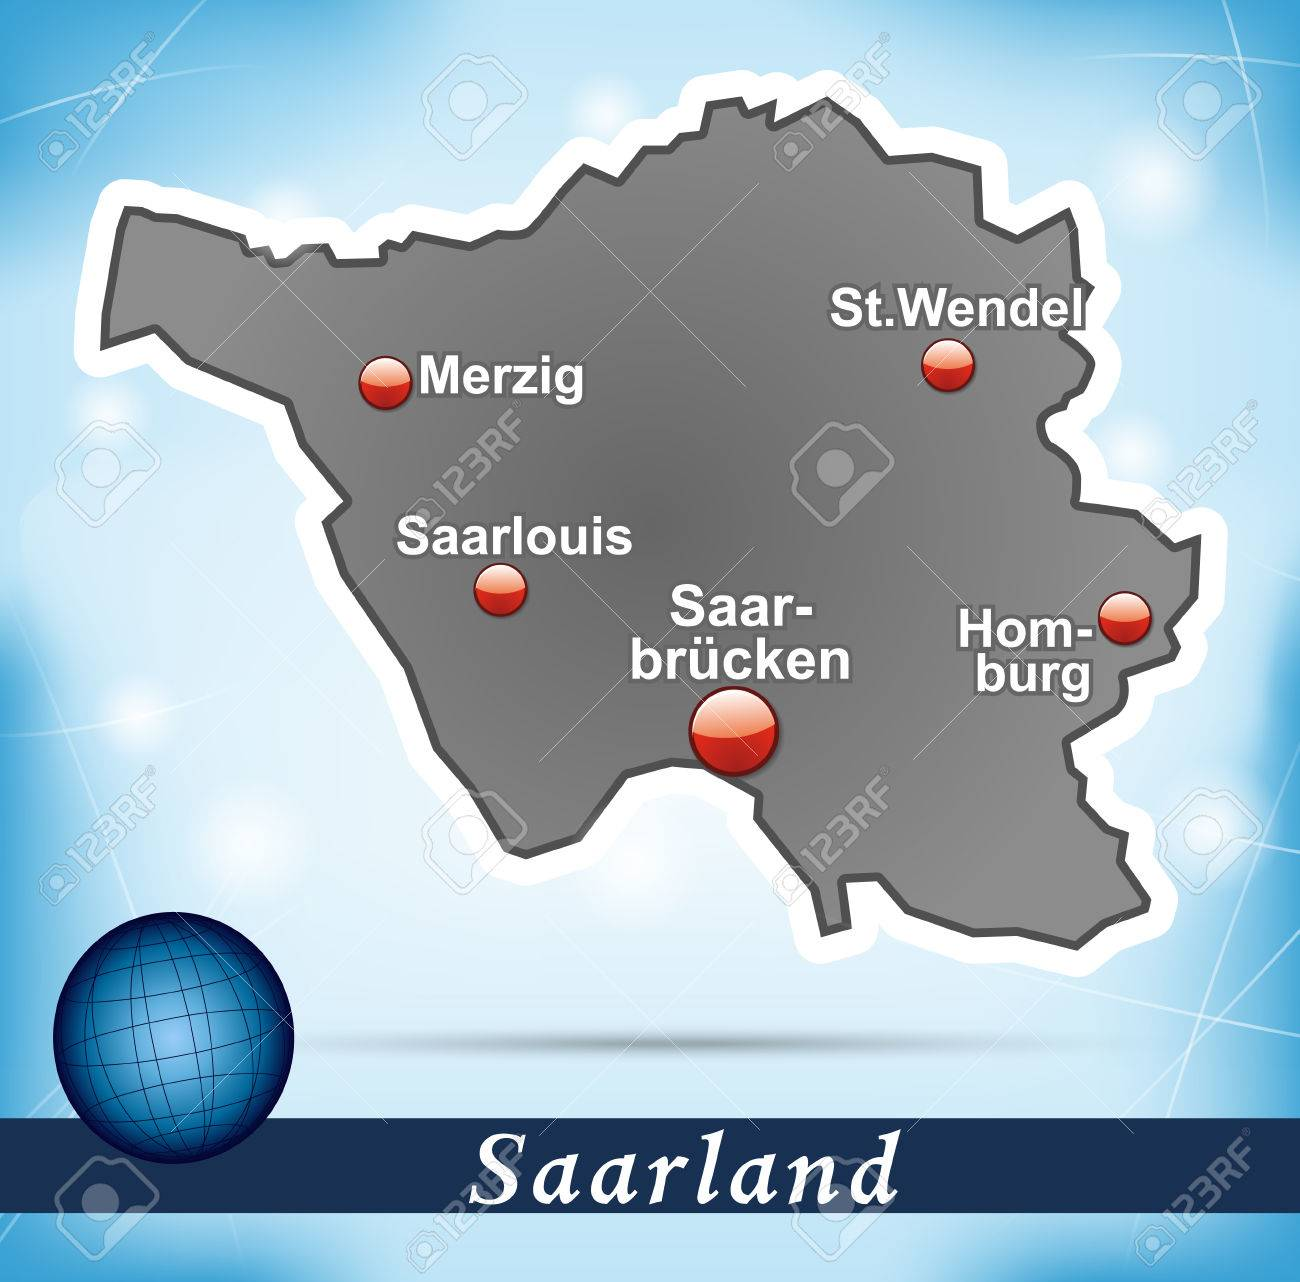 Map of Saarland with abstract background in blue Saar World Map on iran map, greece map, memel map, new zealand map, germany map, essen map, turkey map, berlin map, luxembourg map, morocco map, estonia map, albania map, saarbrucken map, oder map, rhineland map, tunisia map, trieste map, japan map, northern epirus map, poland map,